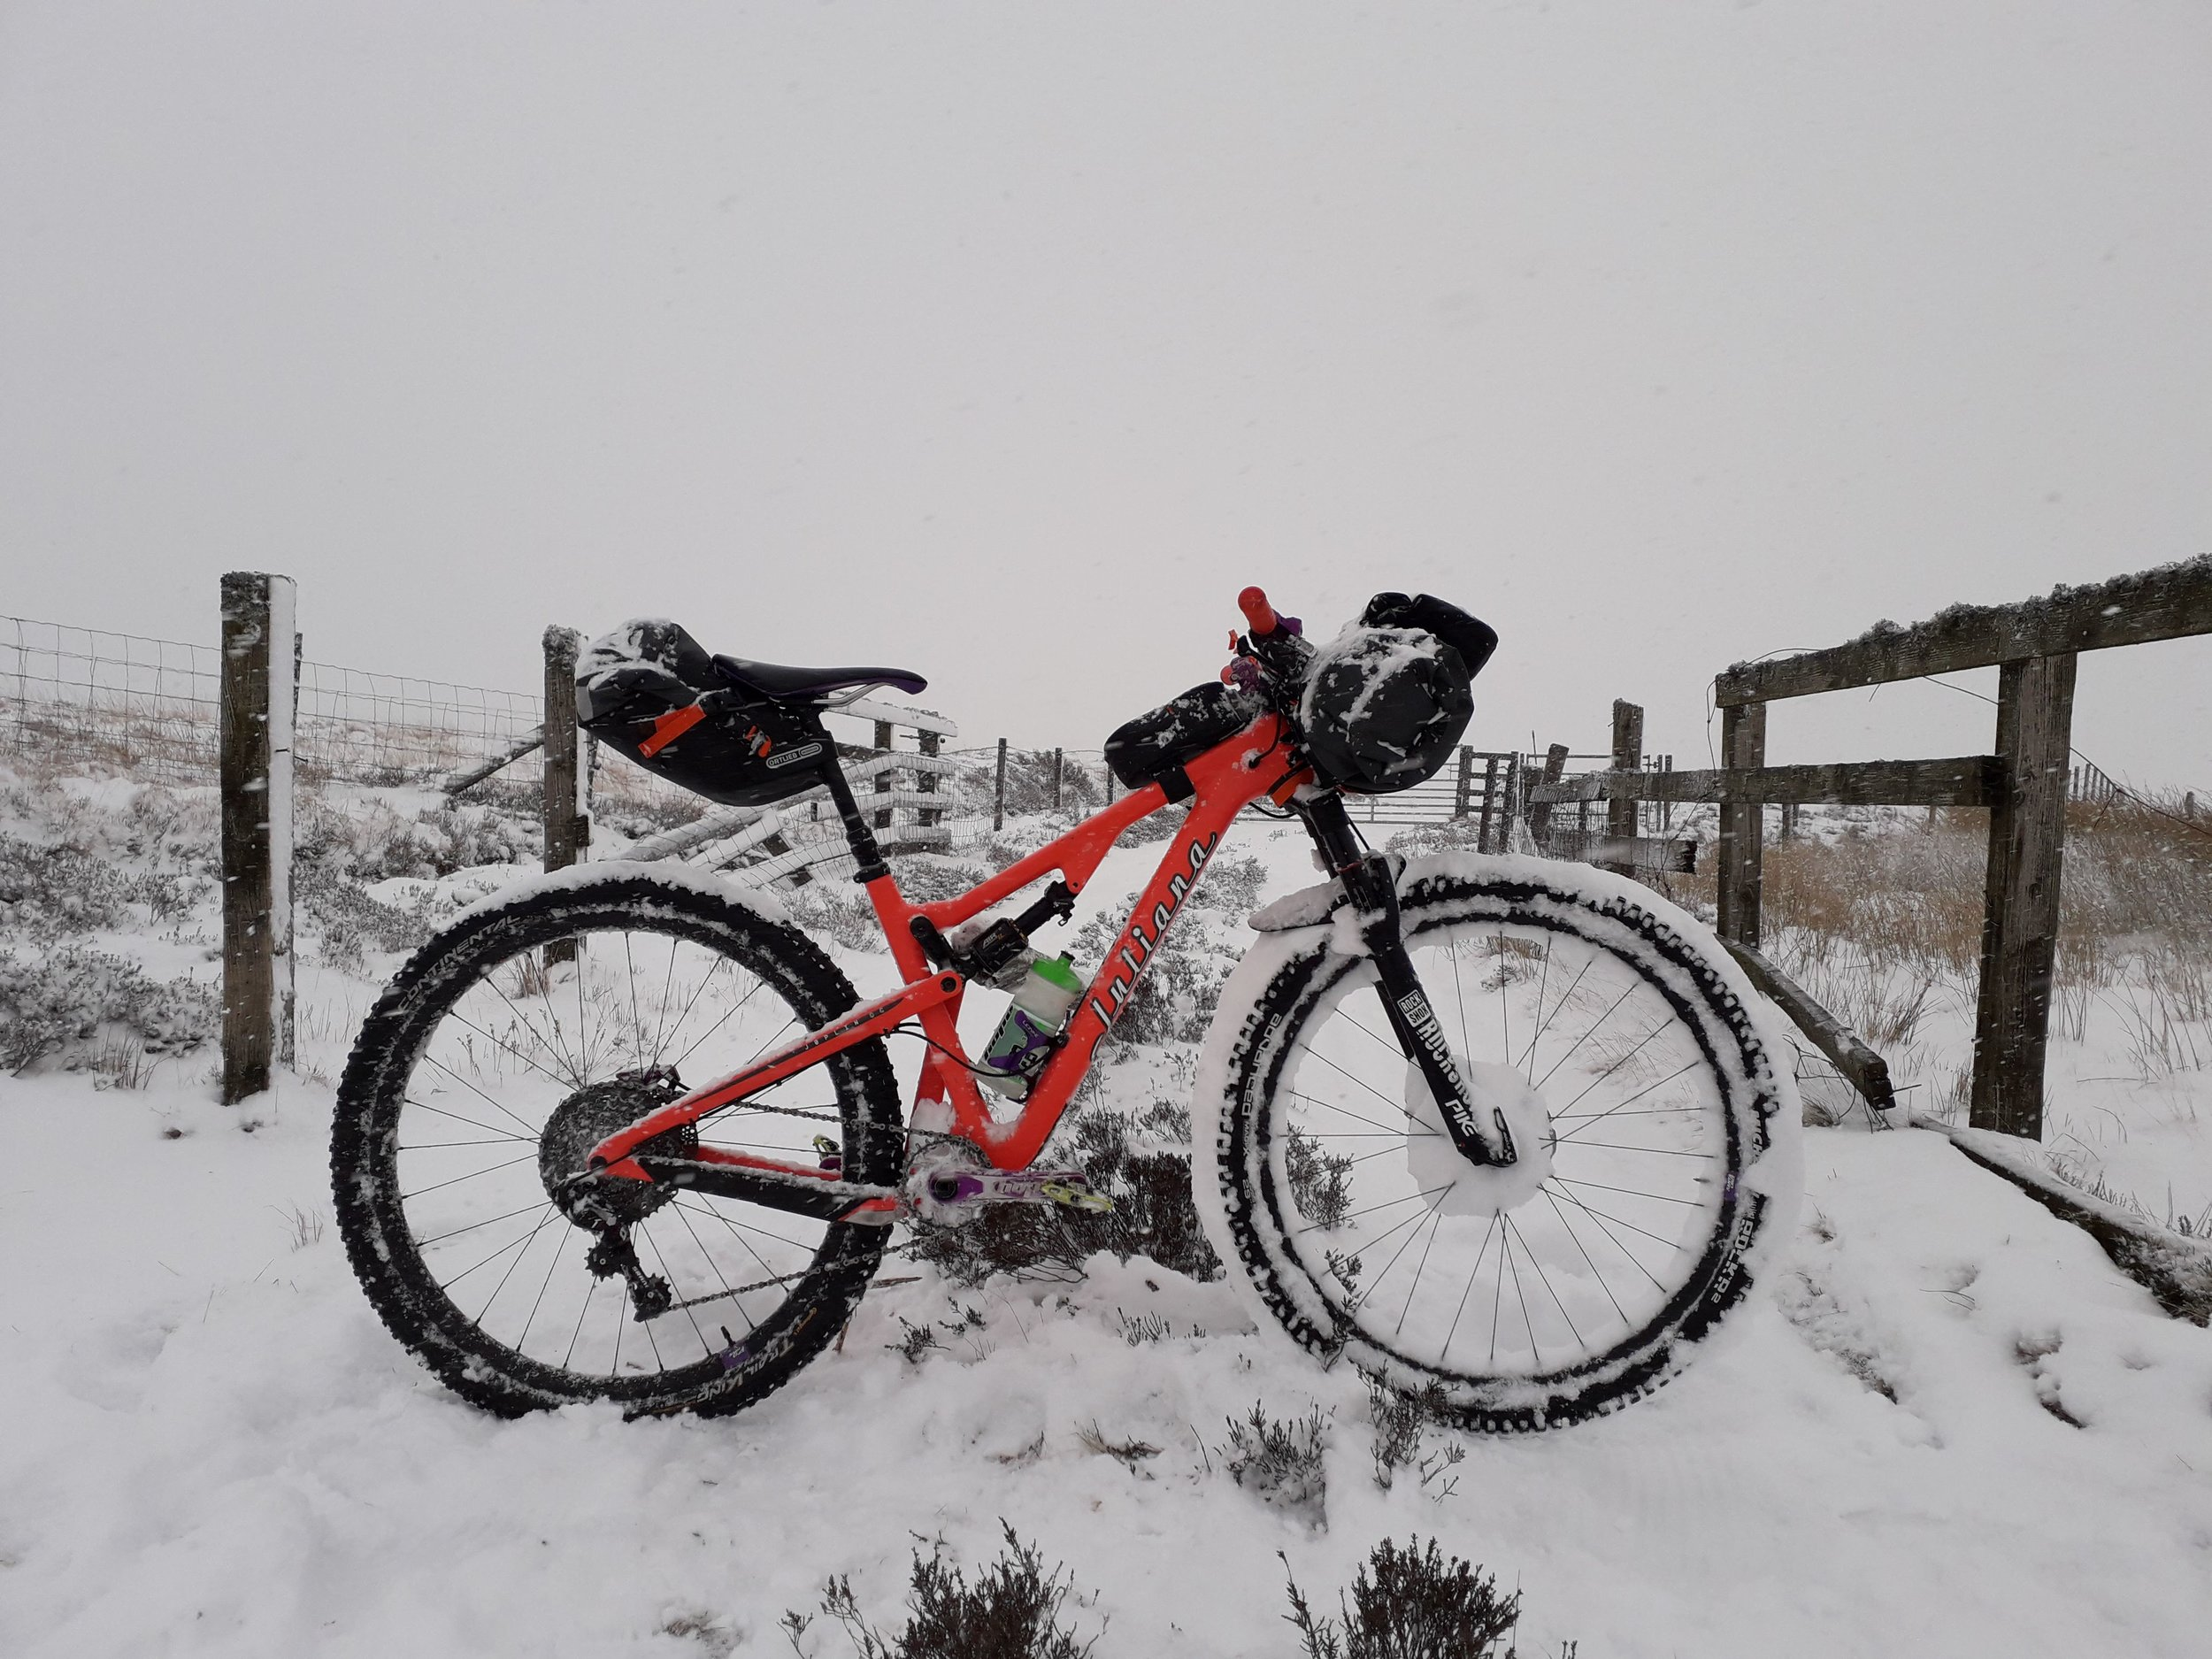 Testing conditions!